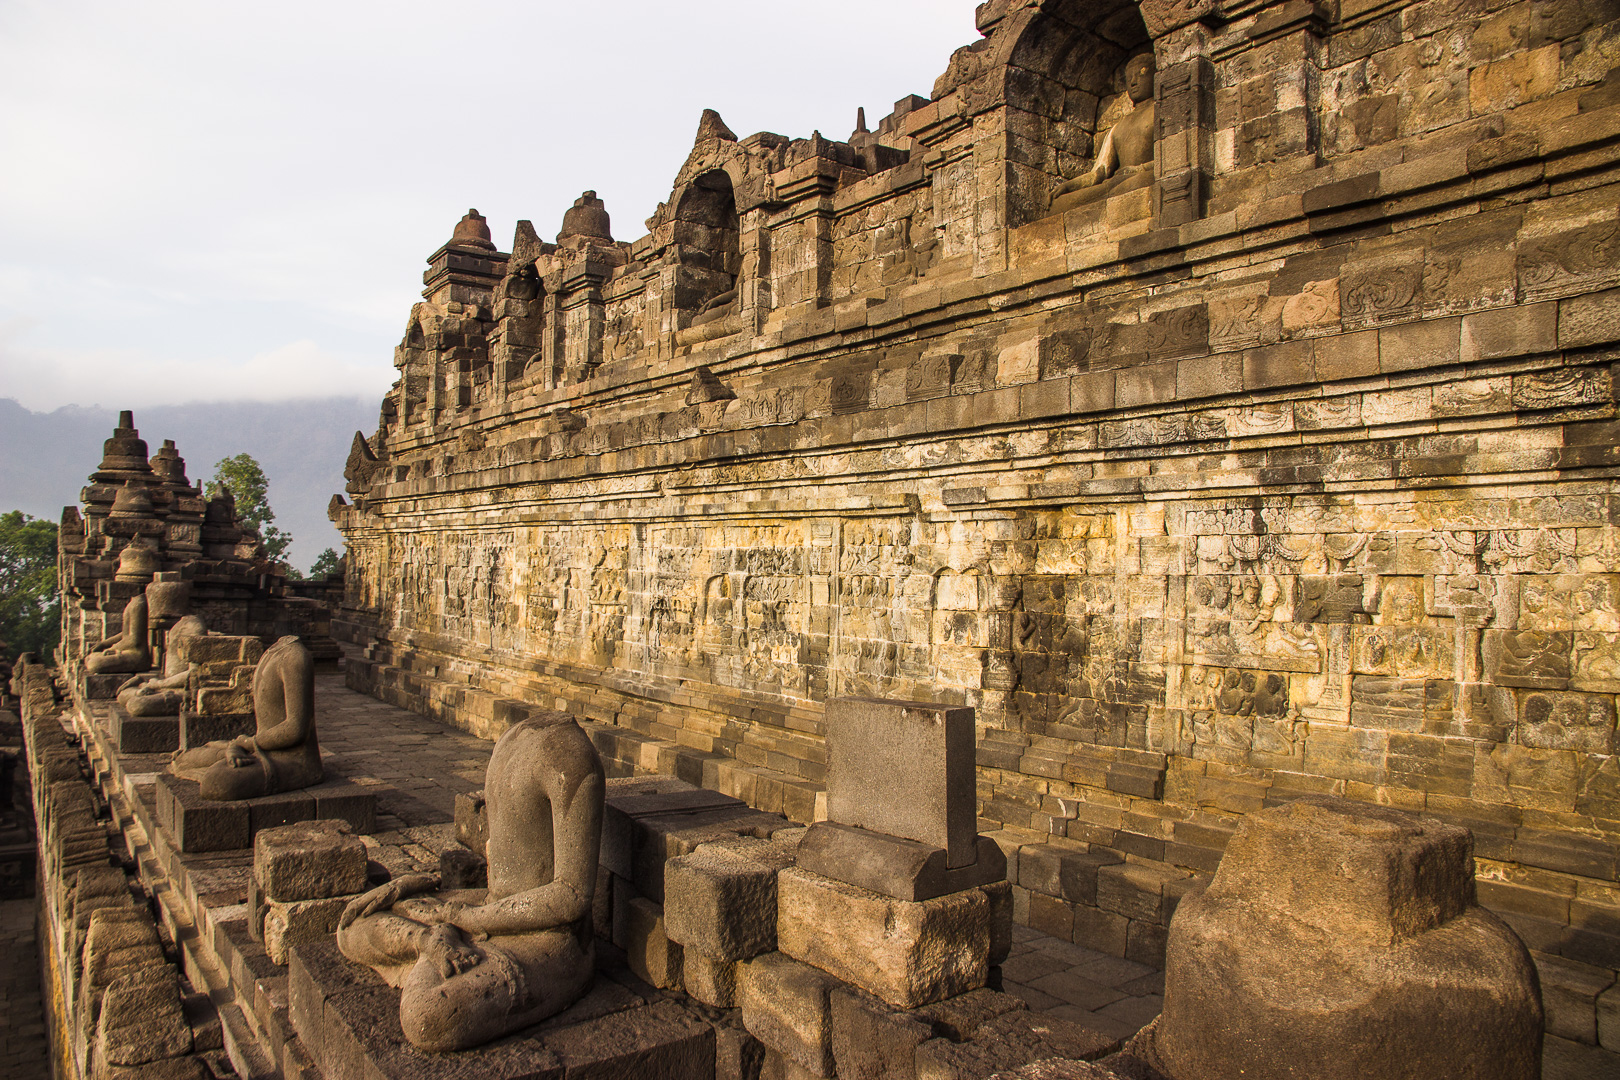 sunrise at borobudur - omnivagant